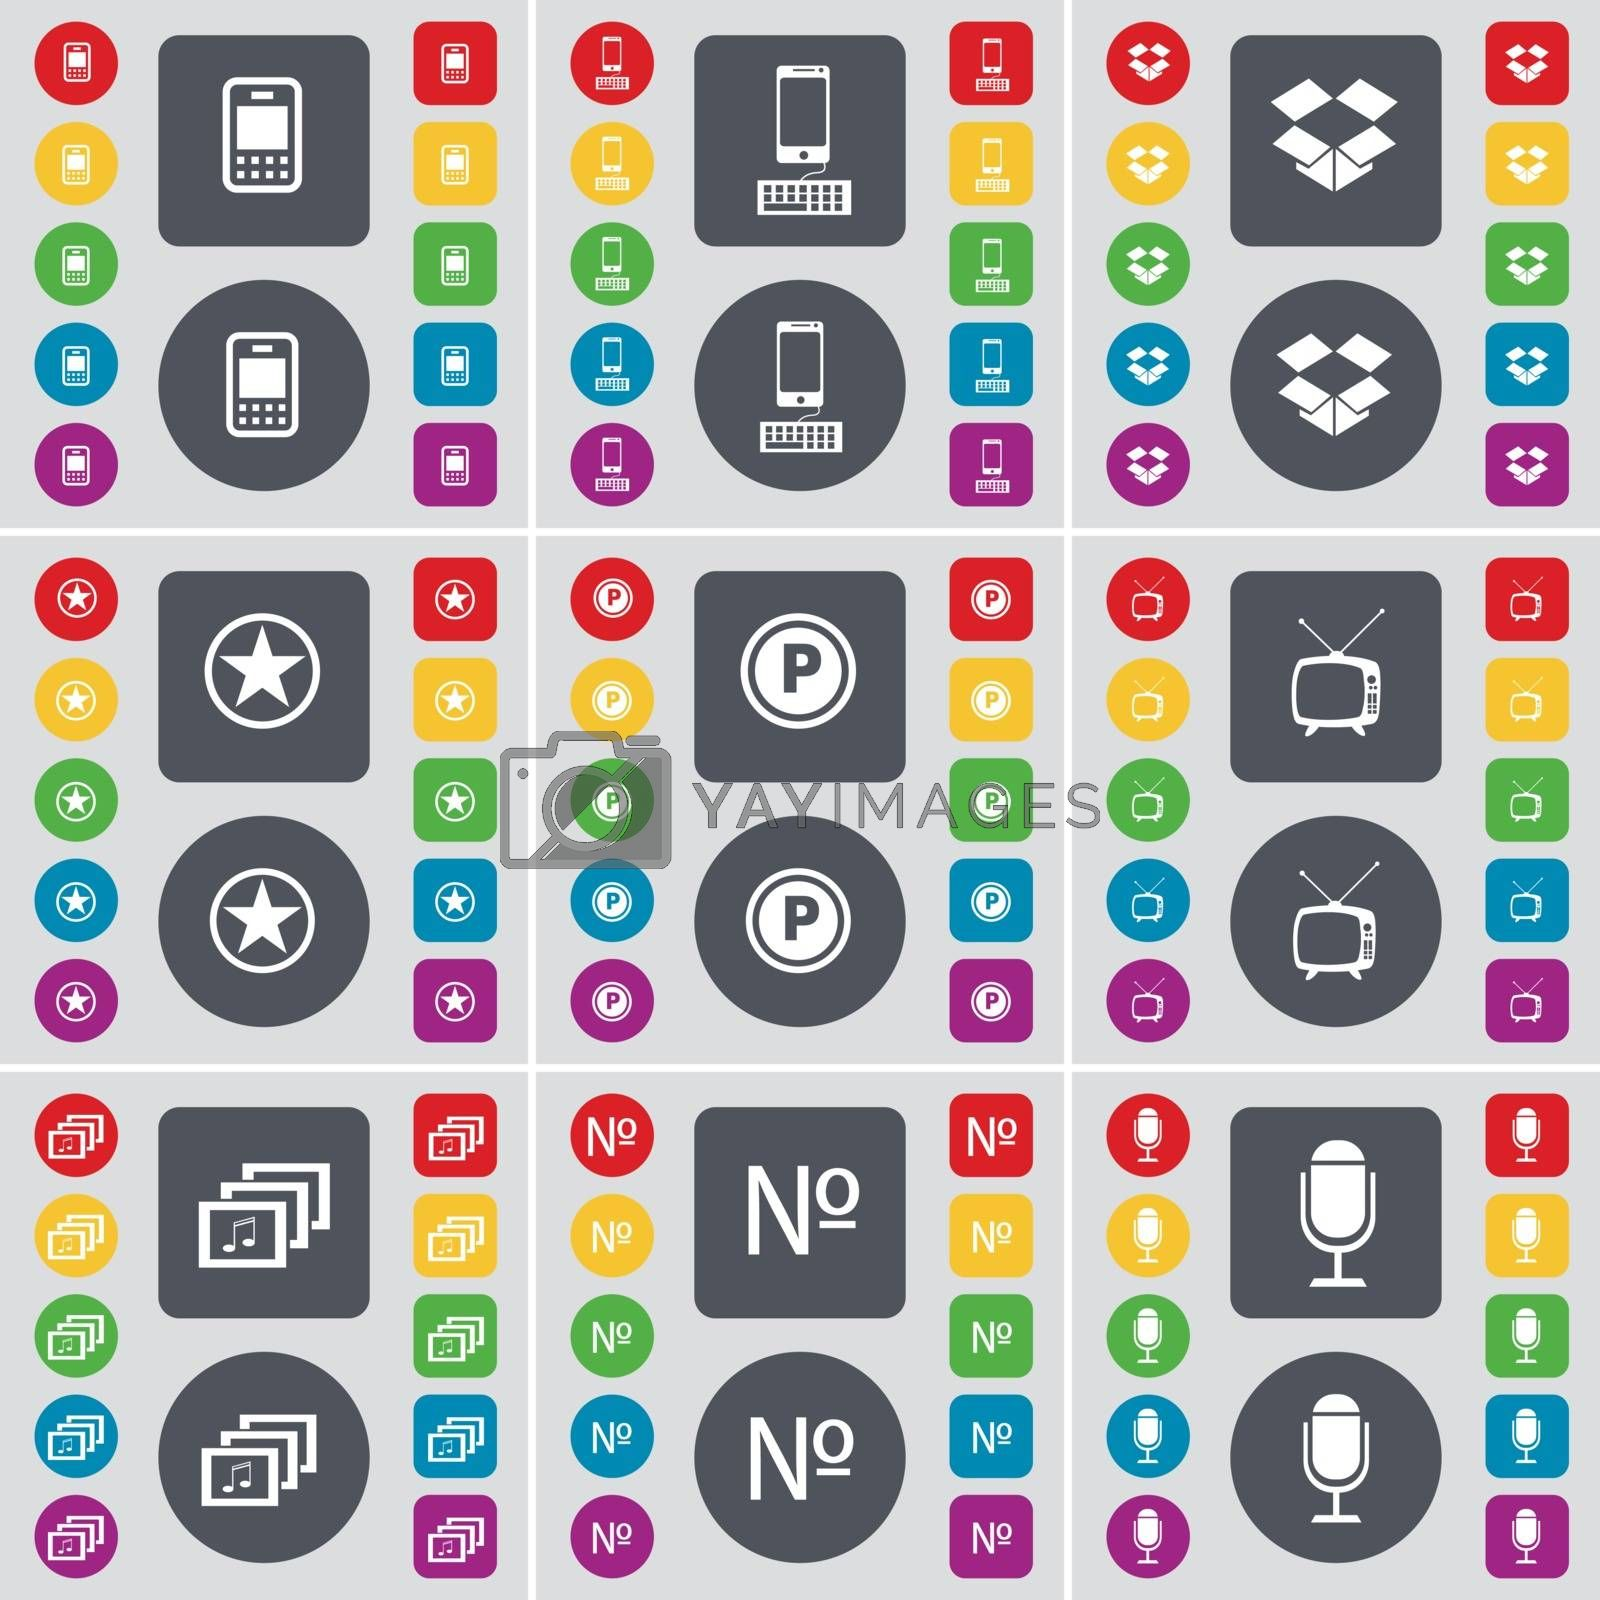 Royalty free image of Mobile phone, Smartphone, Dropbox, Star, Parking, Retro TV, Gallery, Number, Microphone icon symbol. A large set of flat, colored buttons for your design. Vector by serhii_lohvyniuk